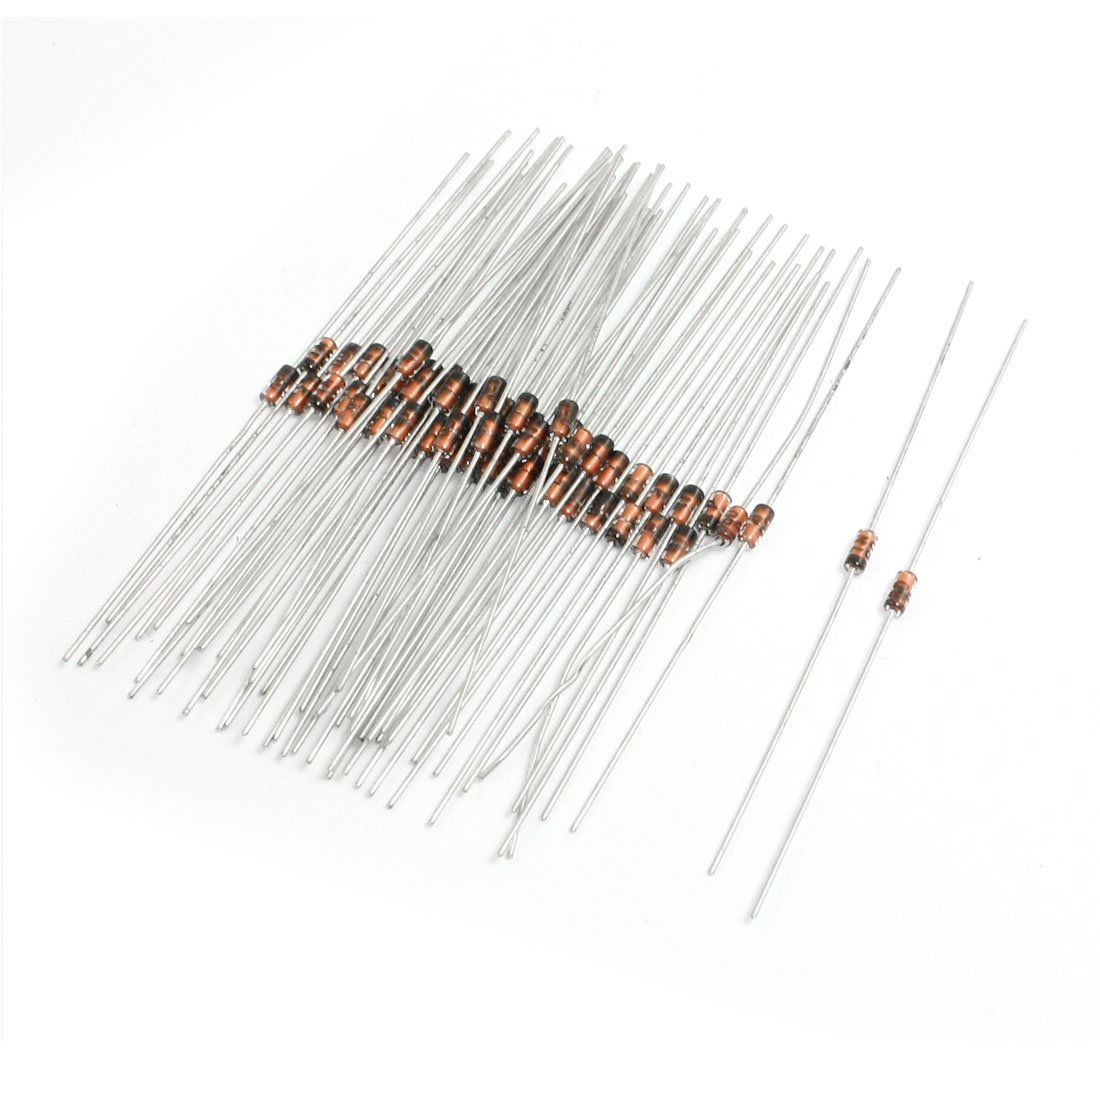 uxcell 1N60P Germanium Detector Diode FM AM TV Radio Detection 60 Pcs